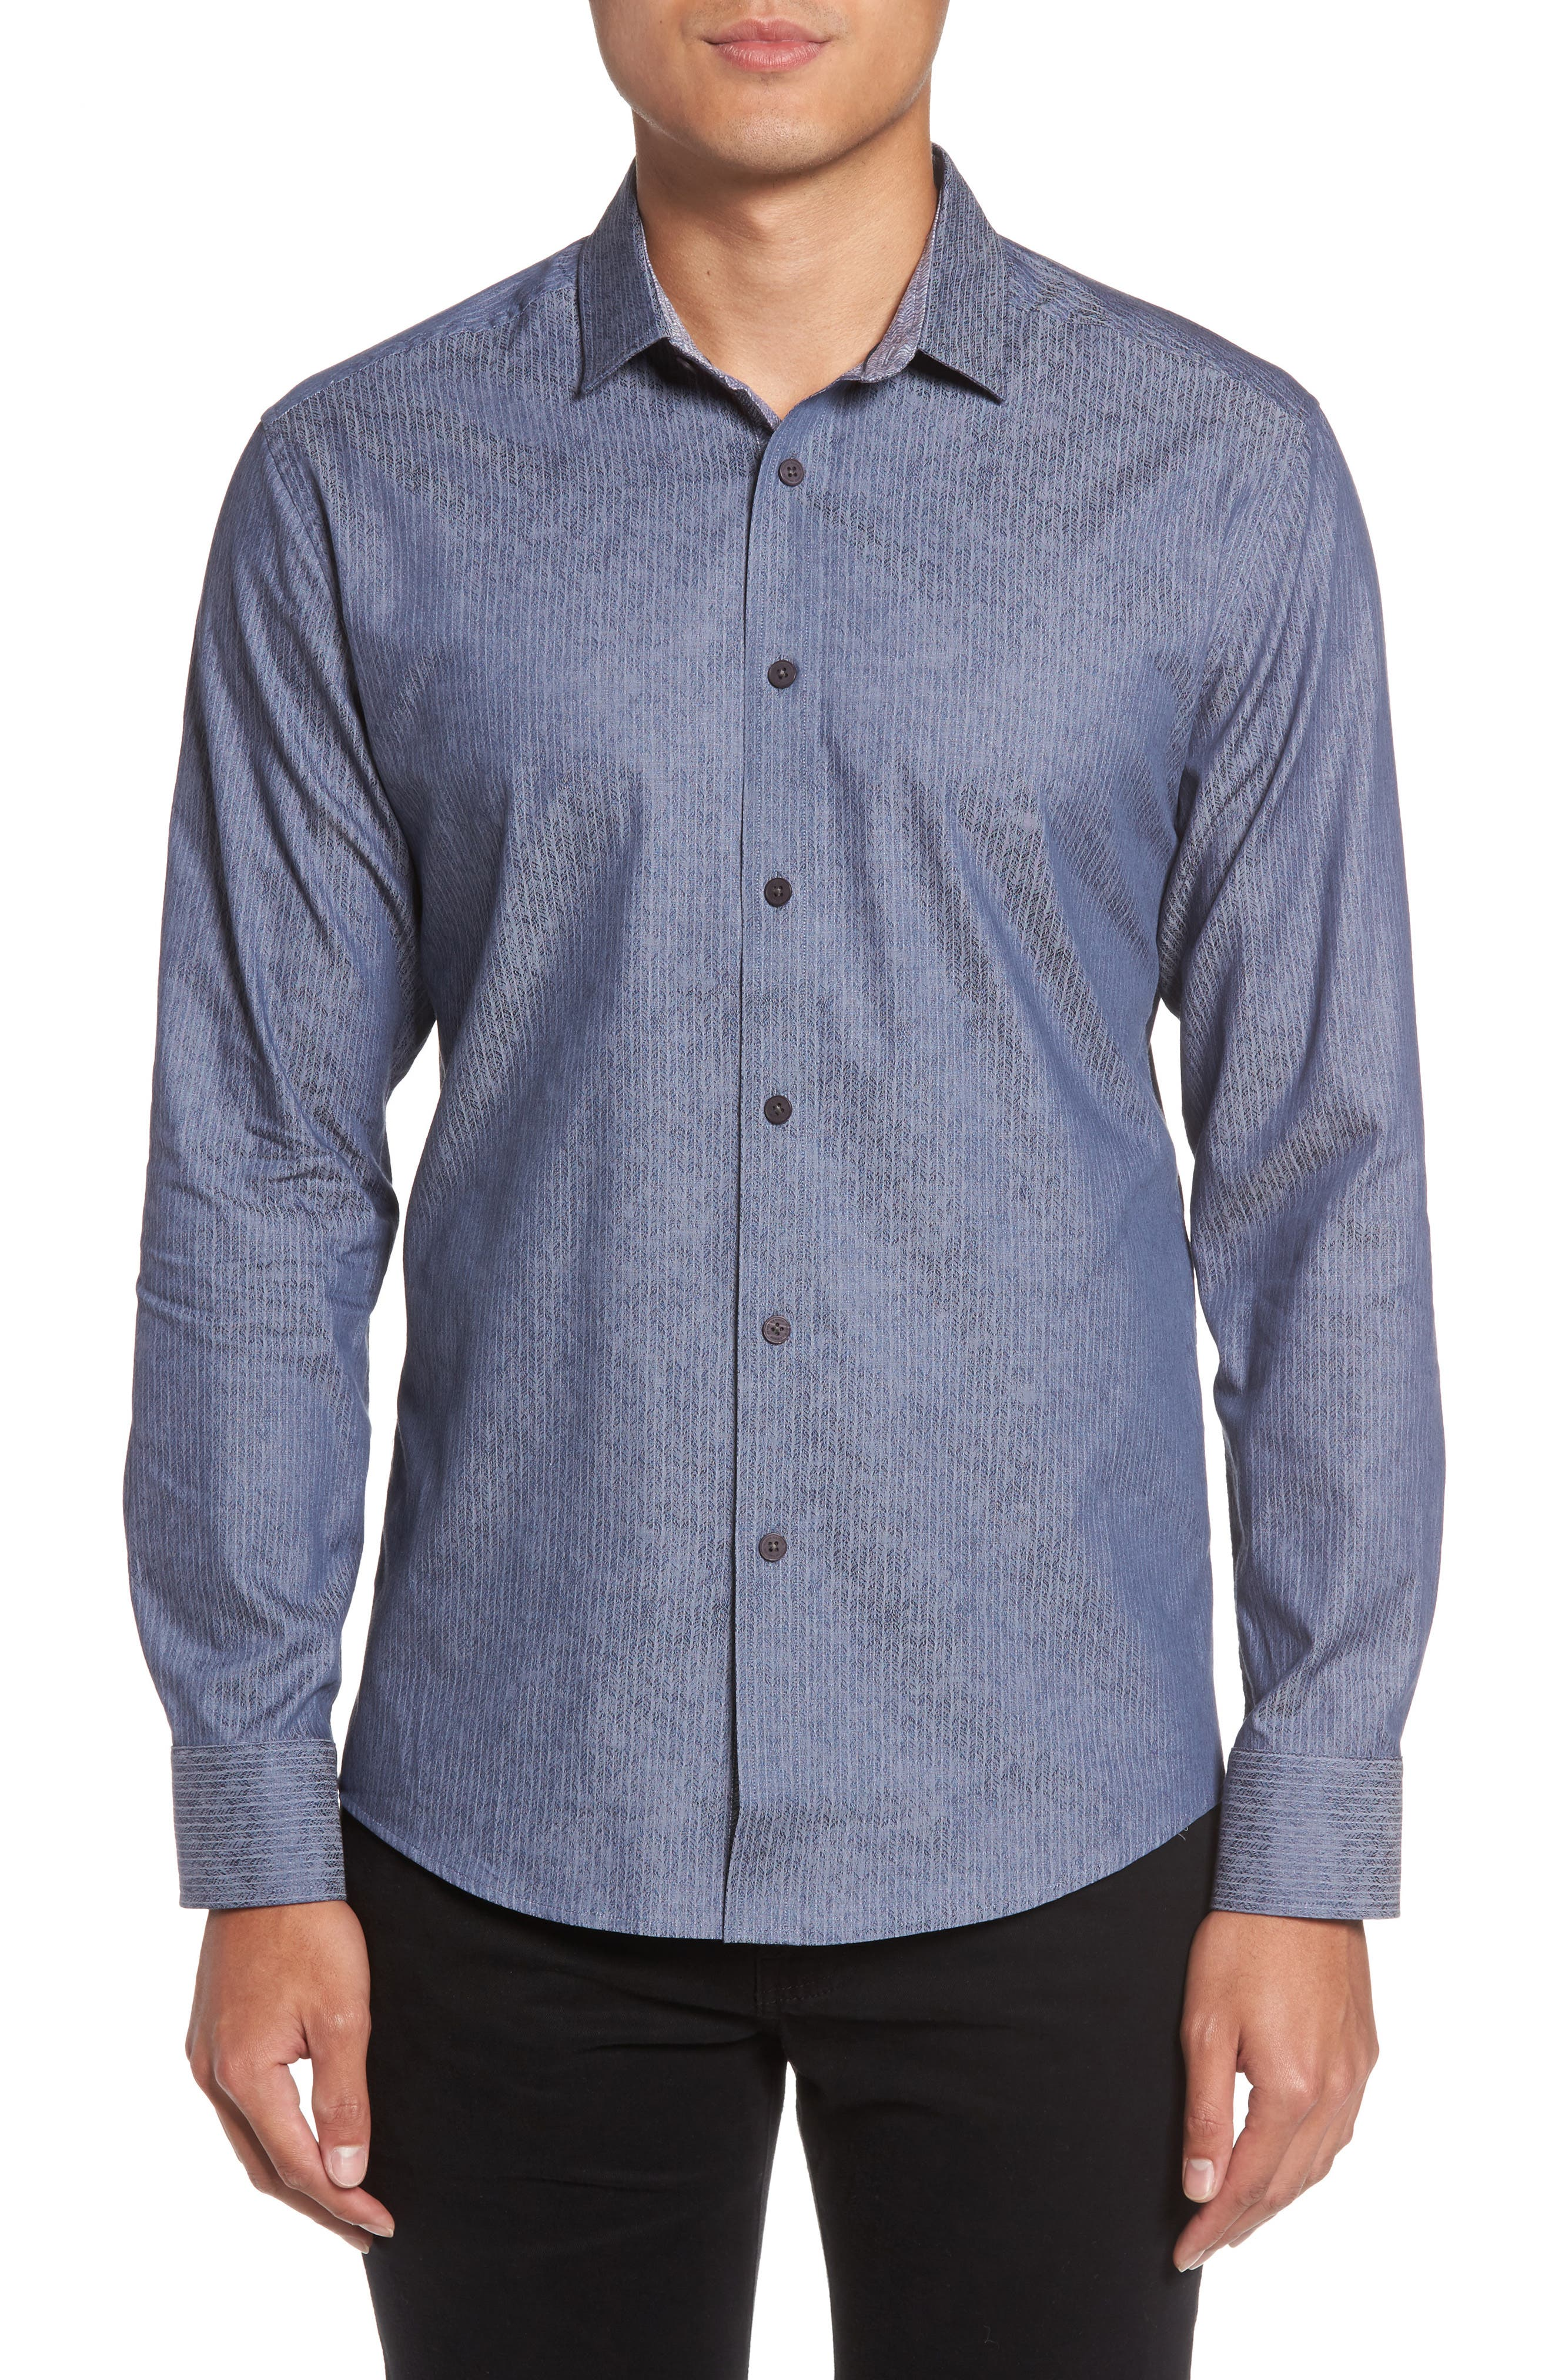 Main Image - Vince Camuto Slim Fit Print Sport Shirt